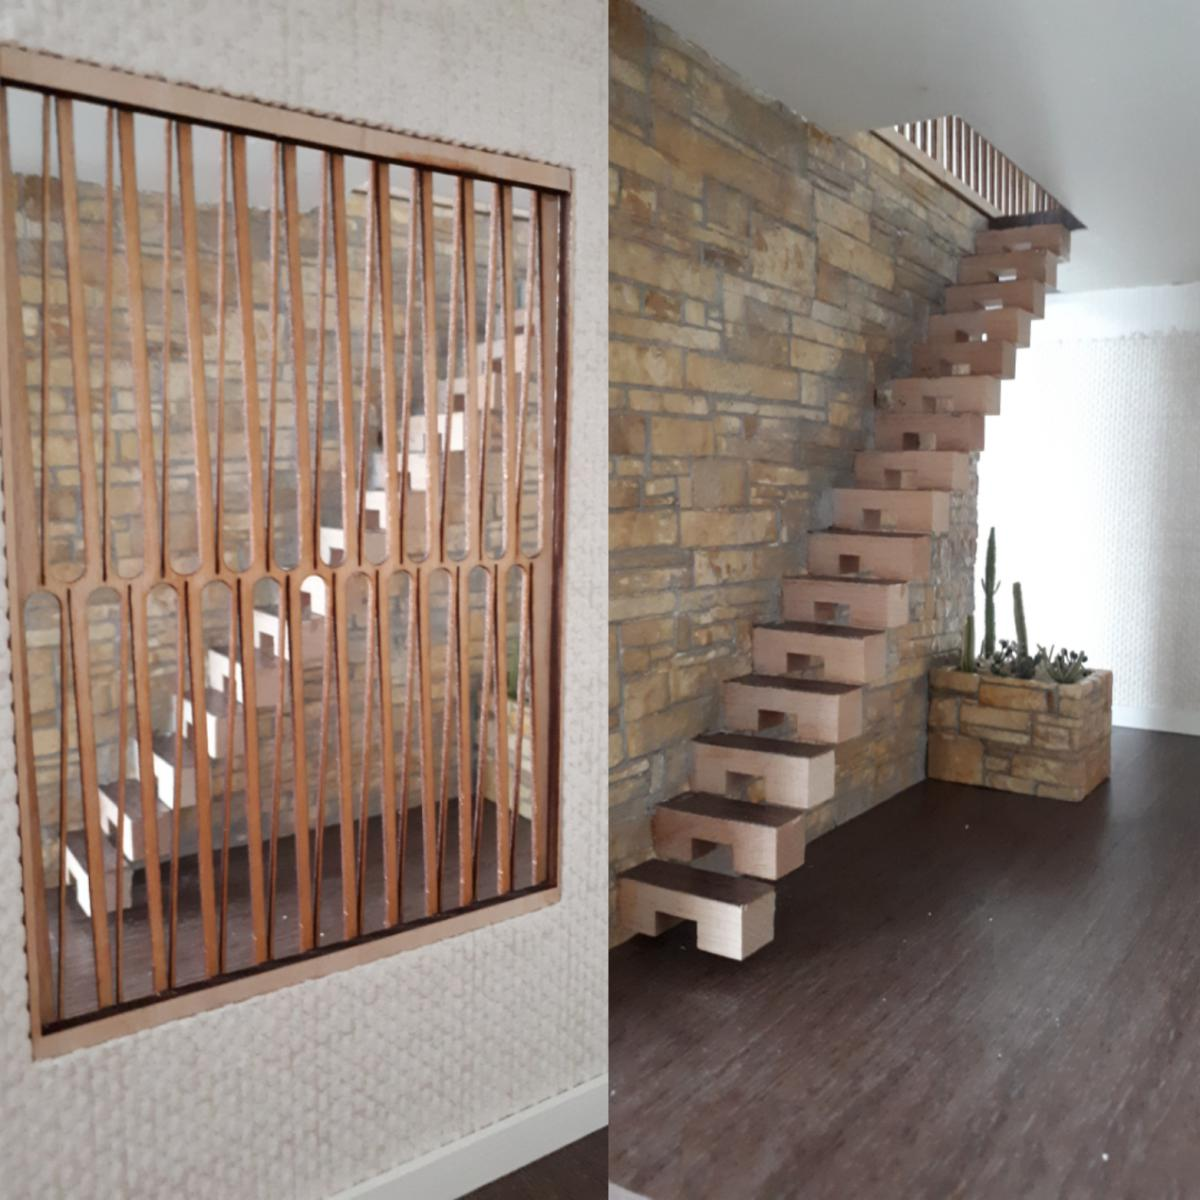 Hallway divider and floating staircase